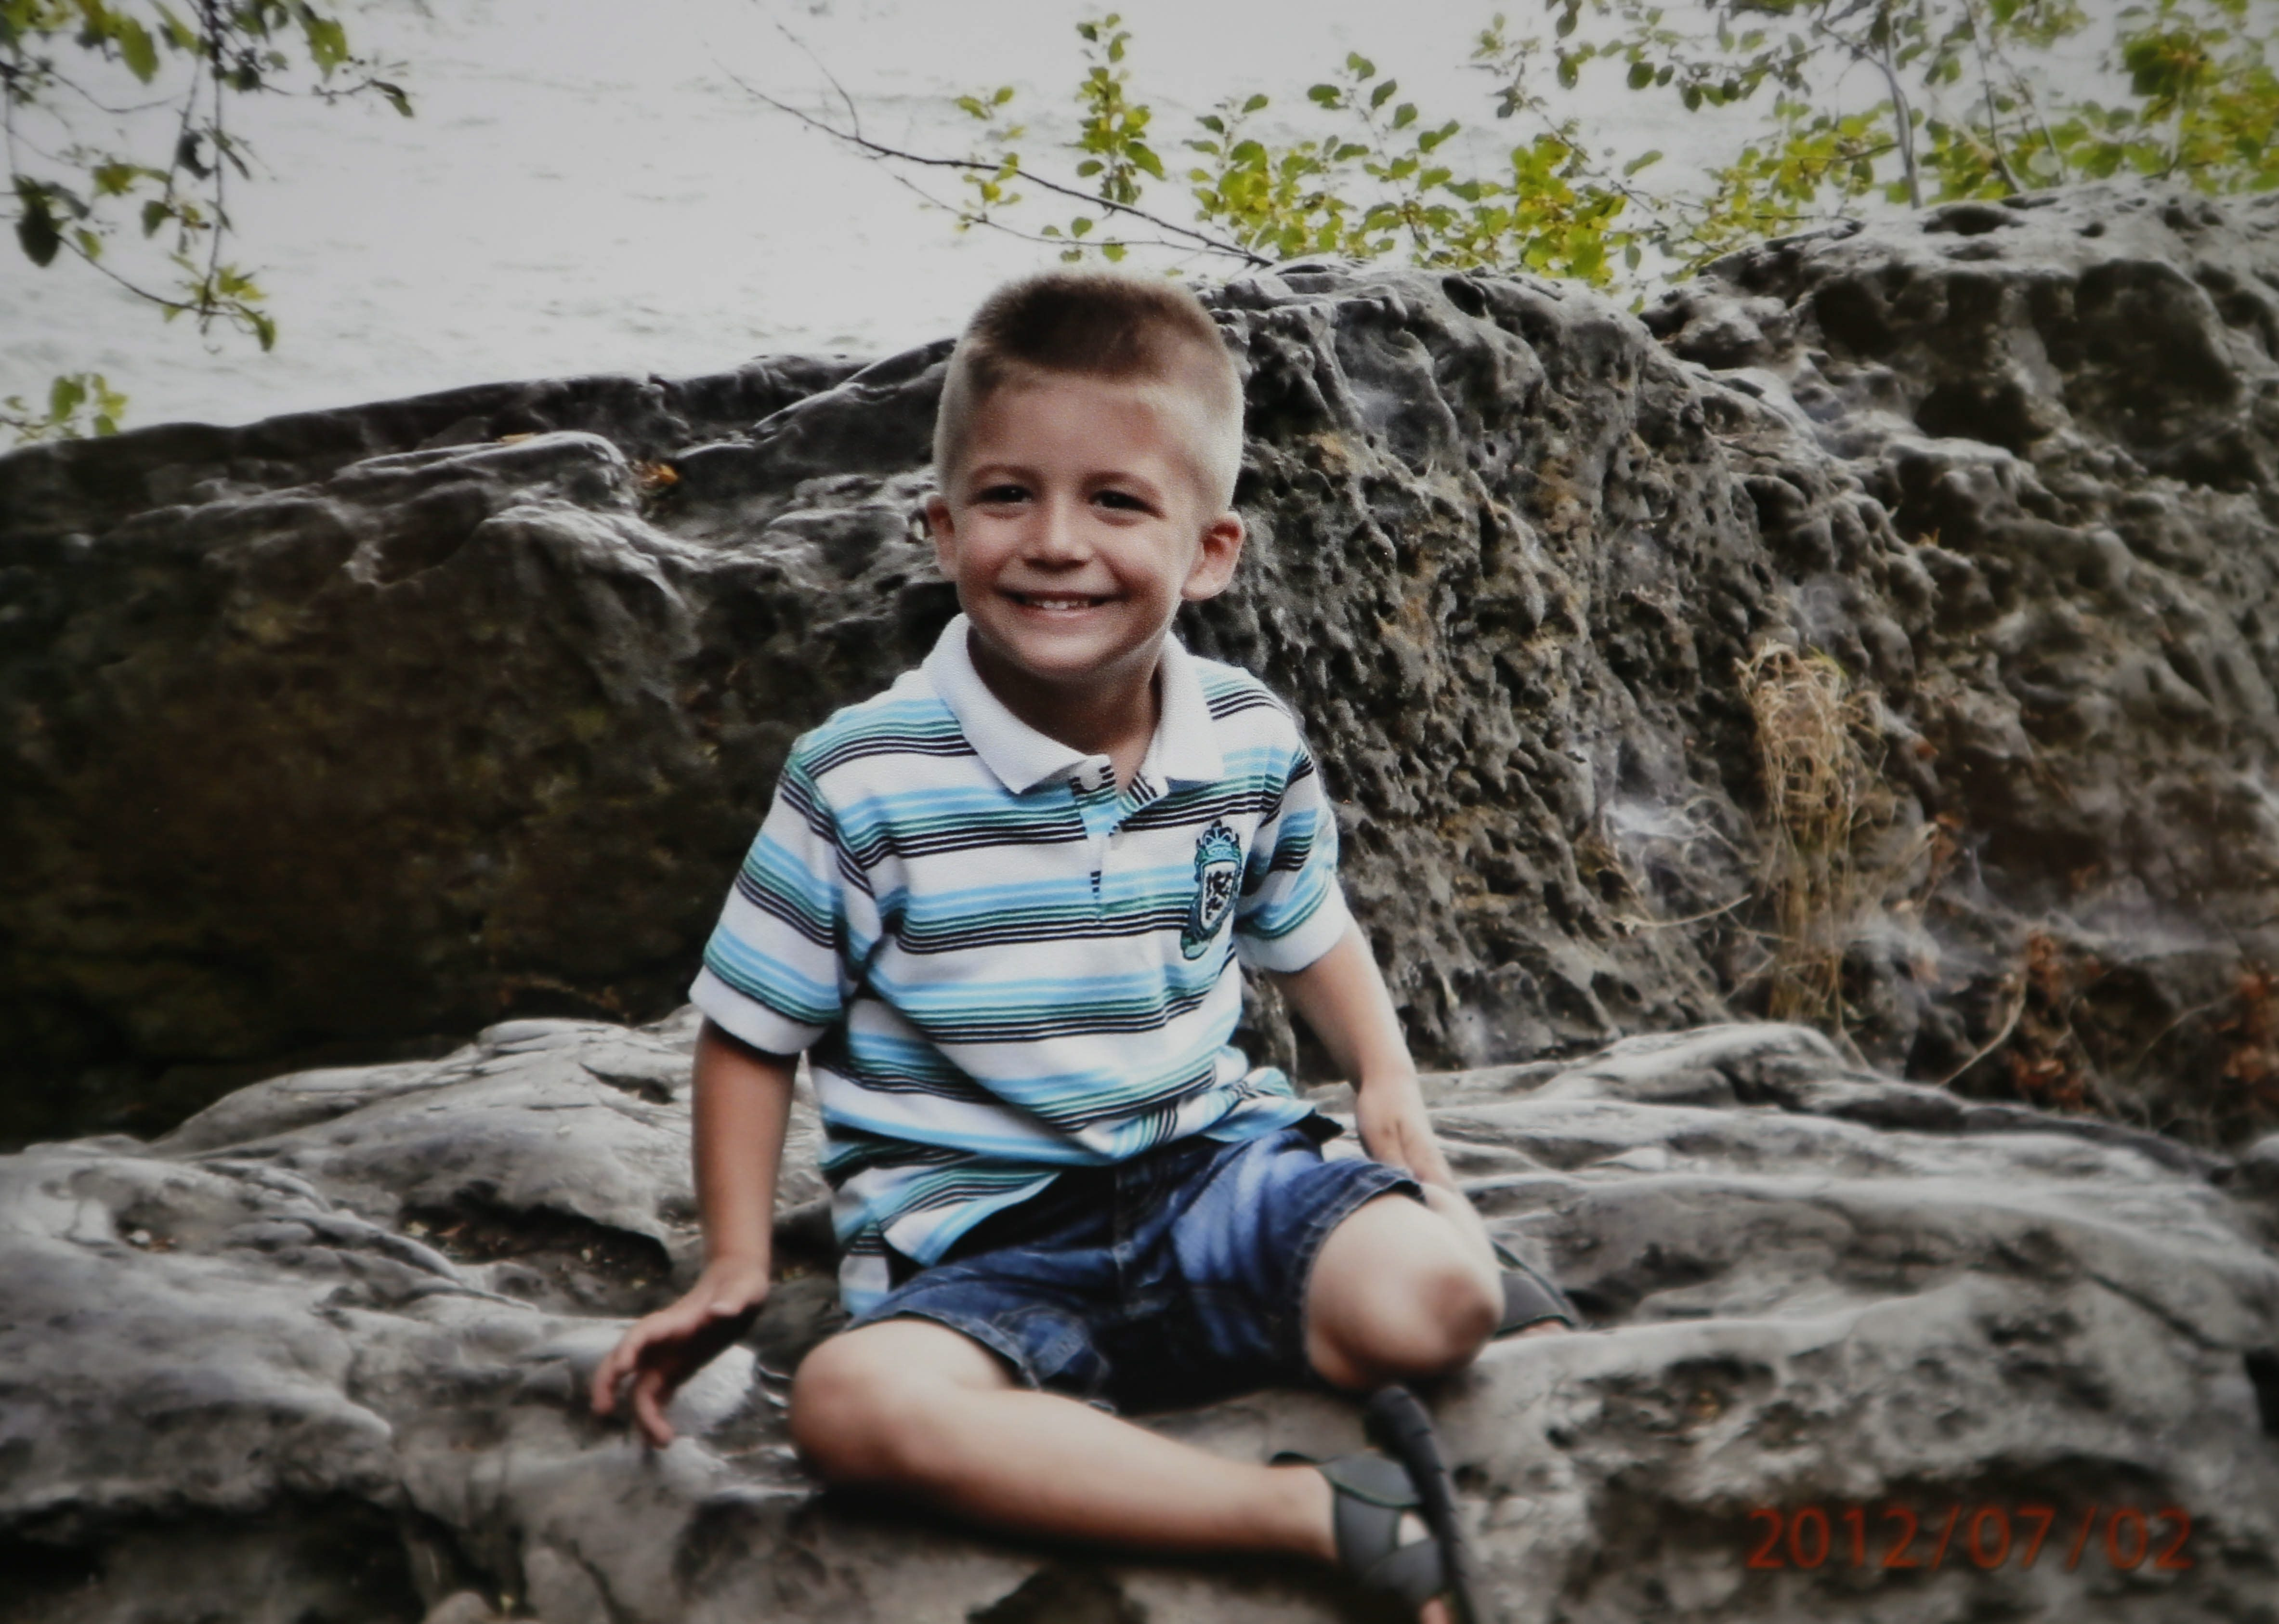 Eain Clayton Brooks   The beating death earlier this year of 5-year-old Eain Clayton Brooks brought the actions of the Erie County Child Protective Services into question.